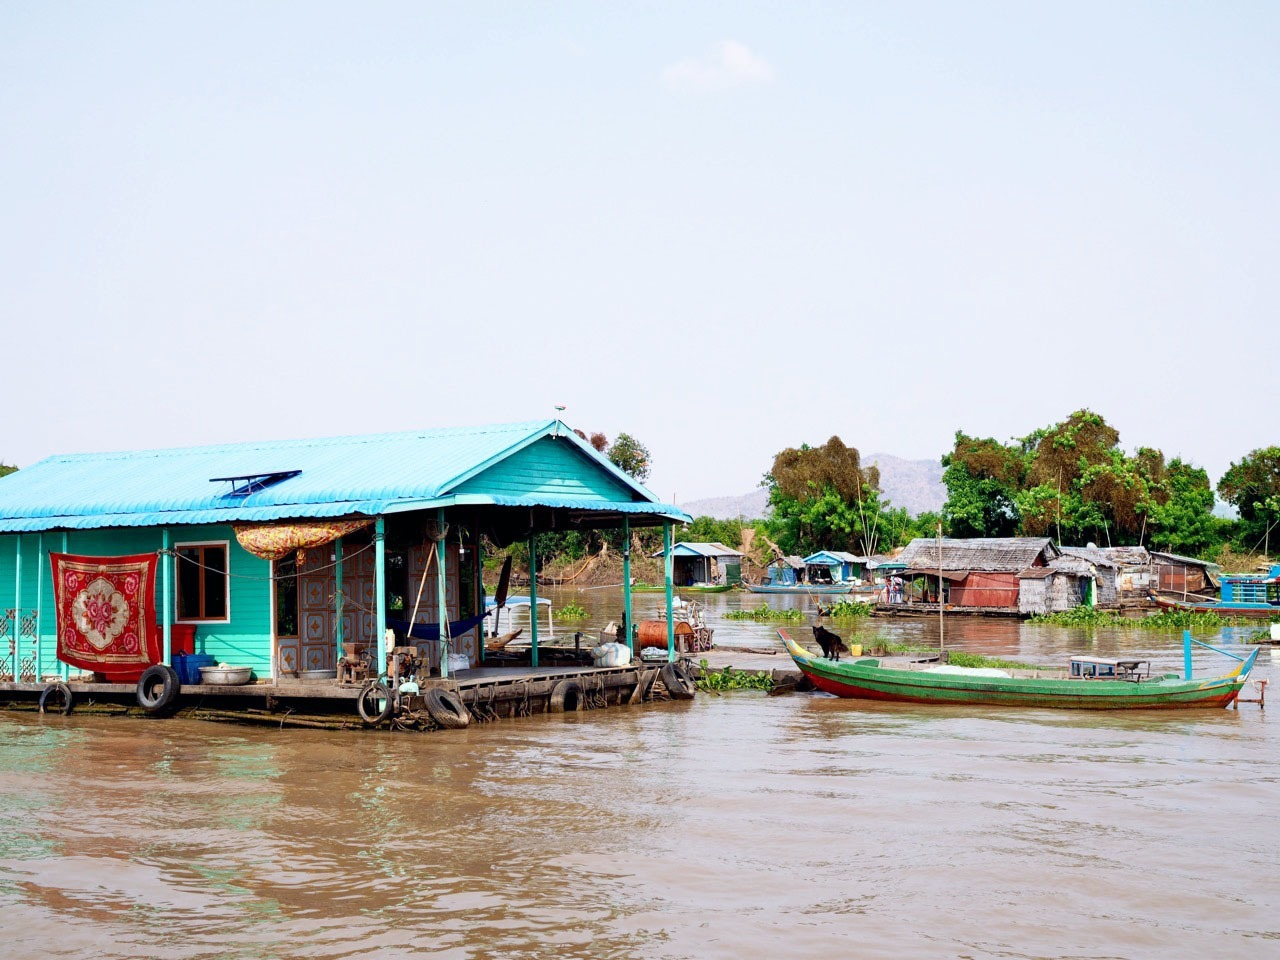 River Cruise on the Mekong